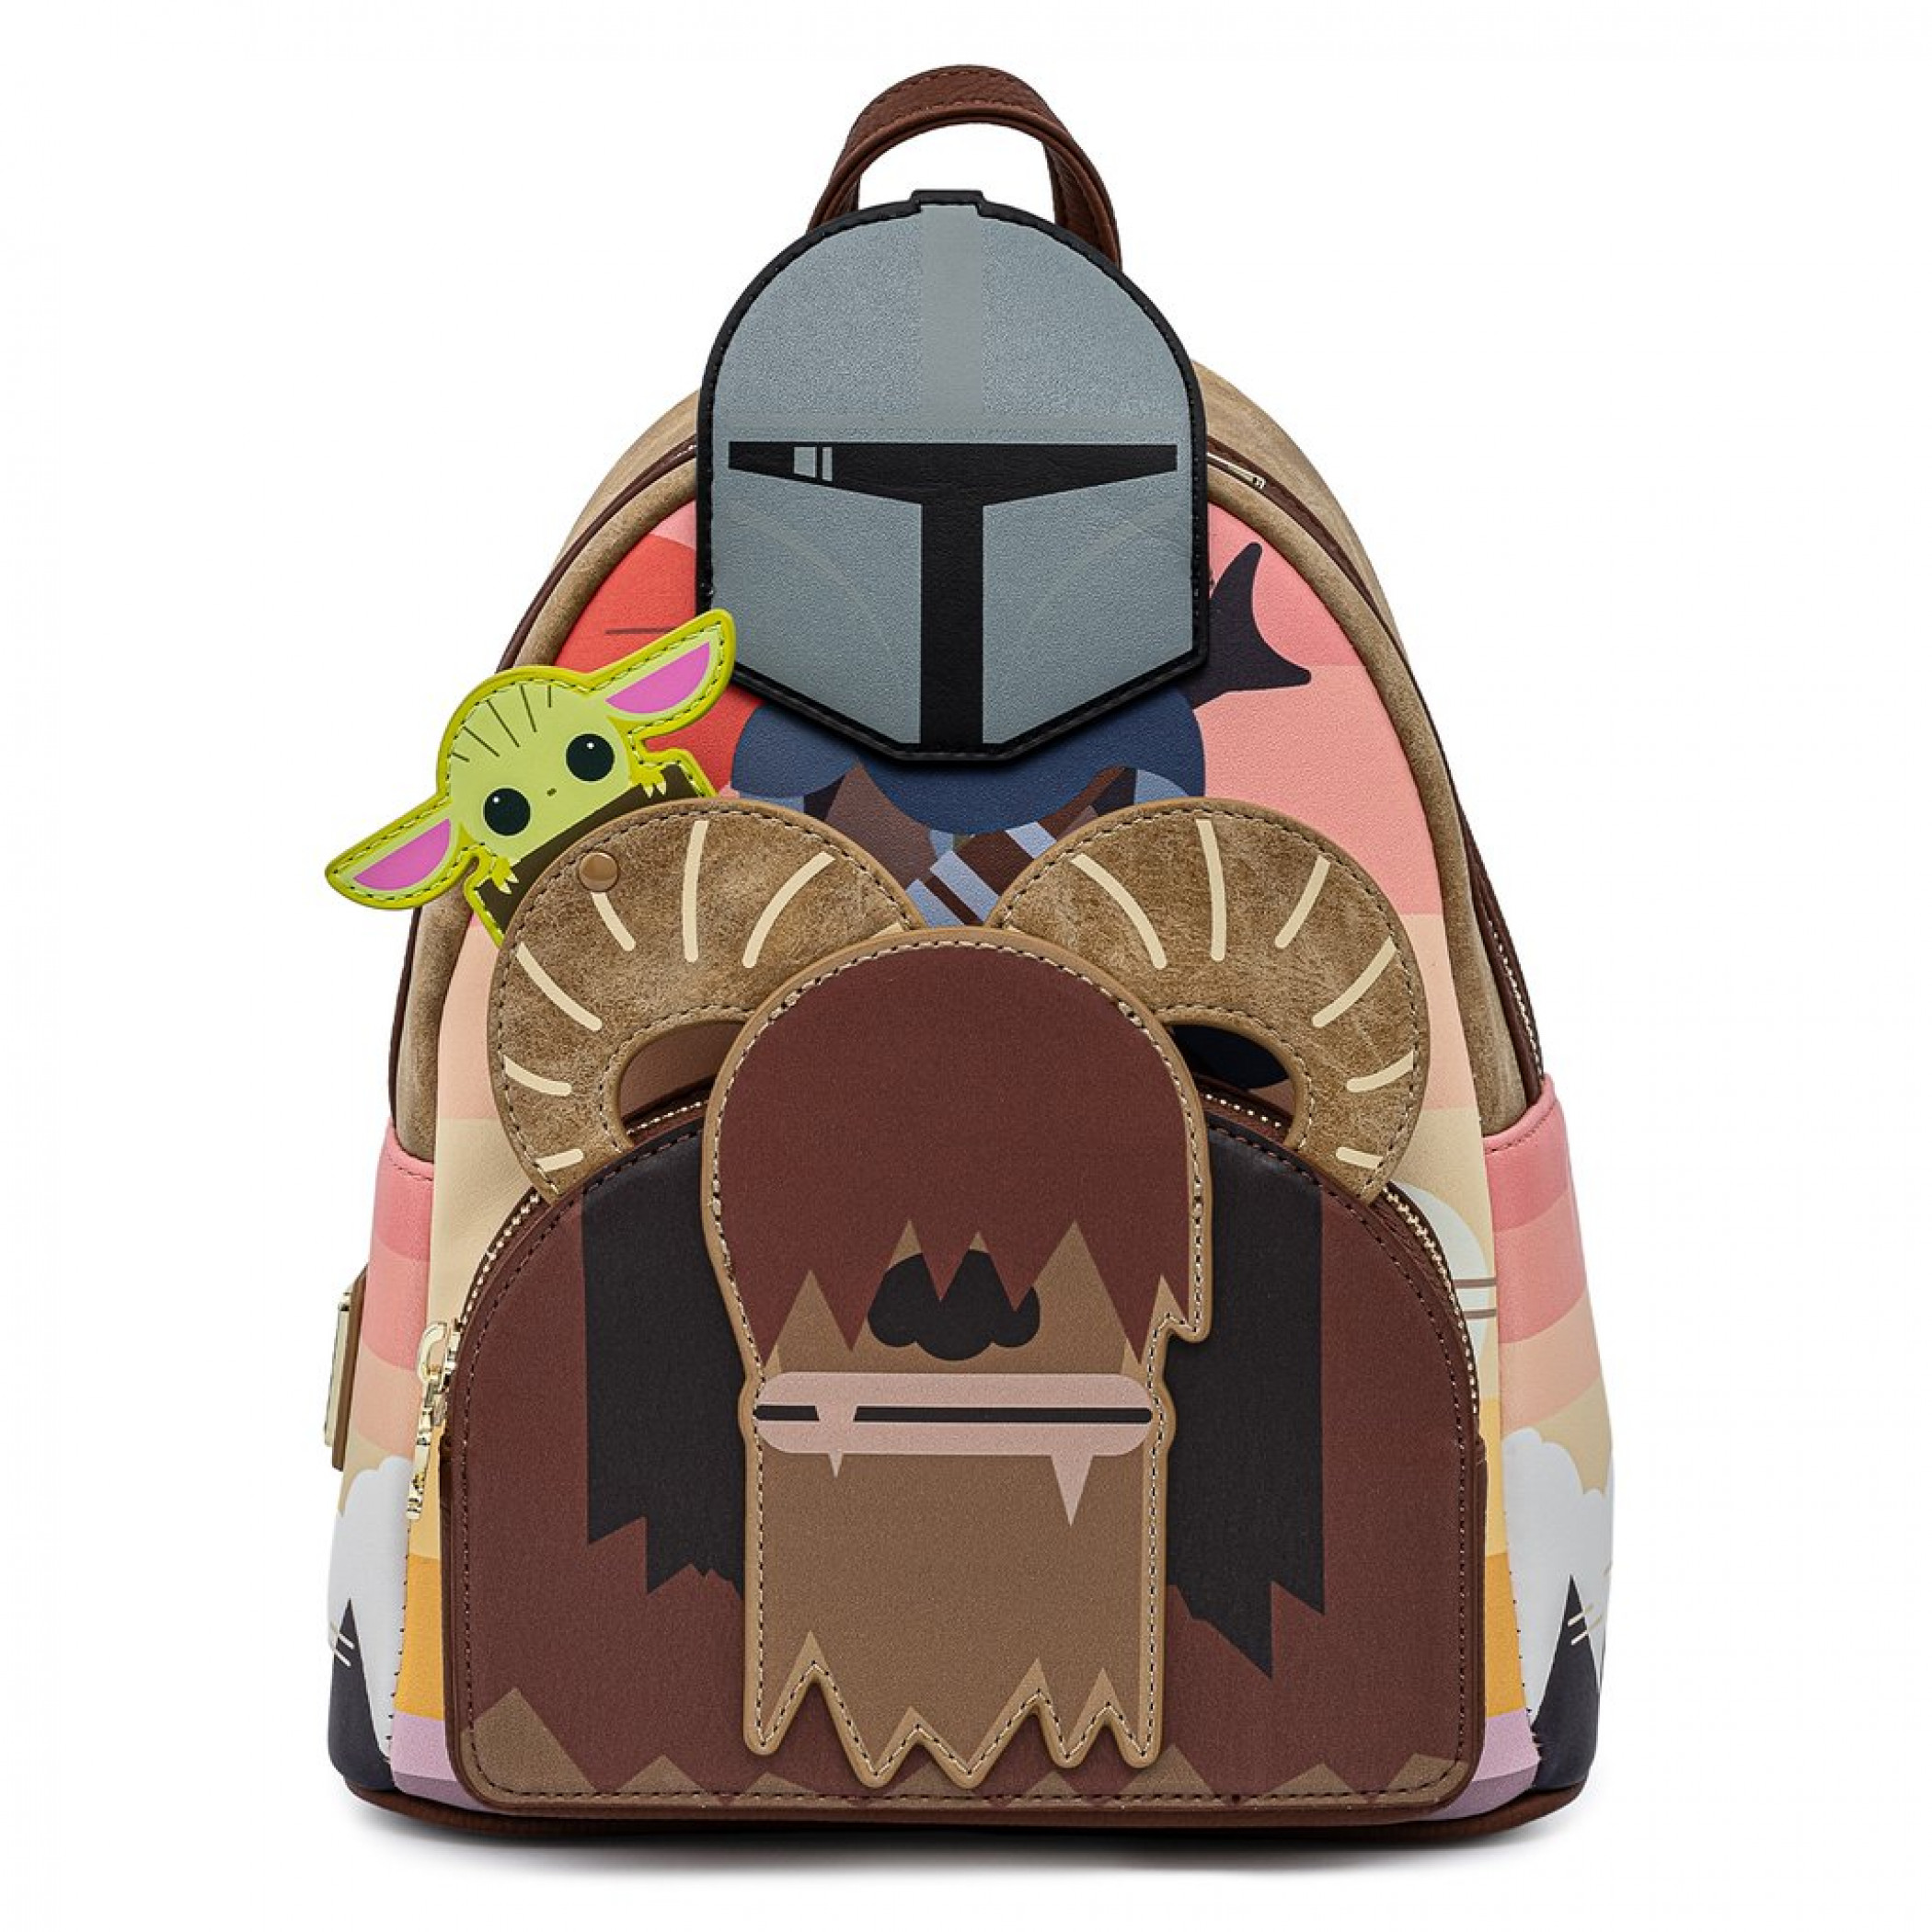 Star Wars The Mandalorian and Grogu Mini Backpack by Loungefly